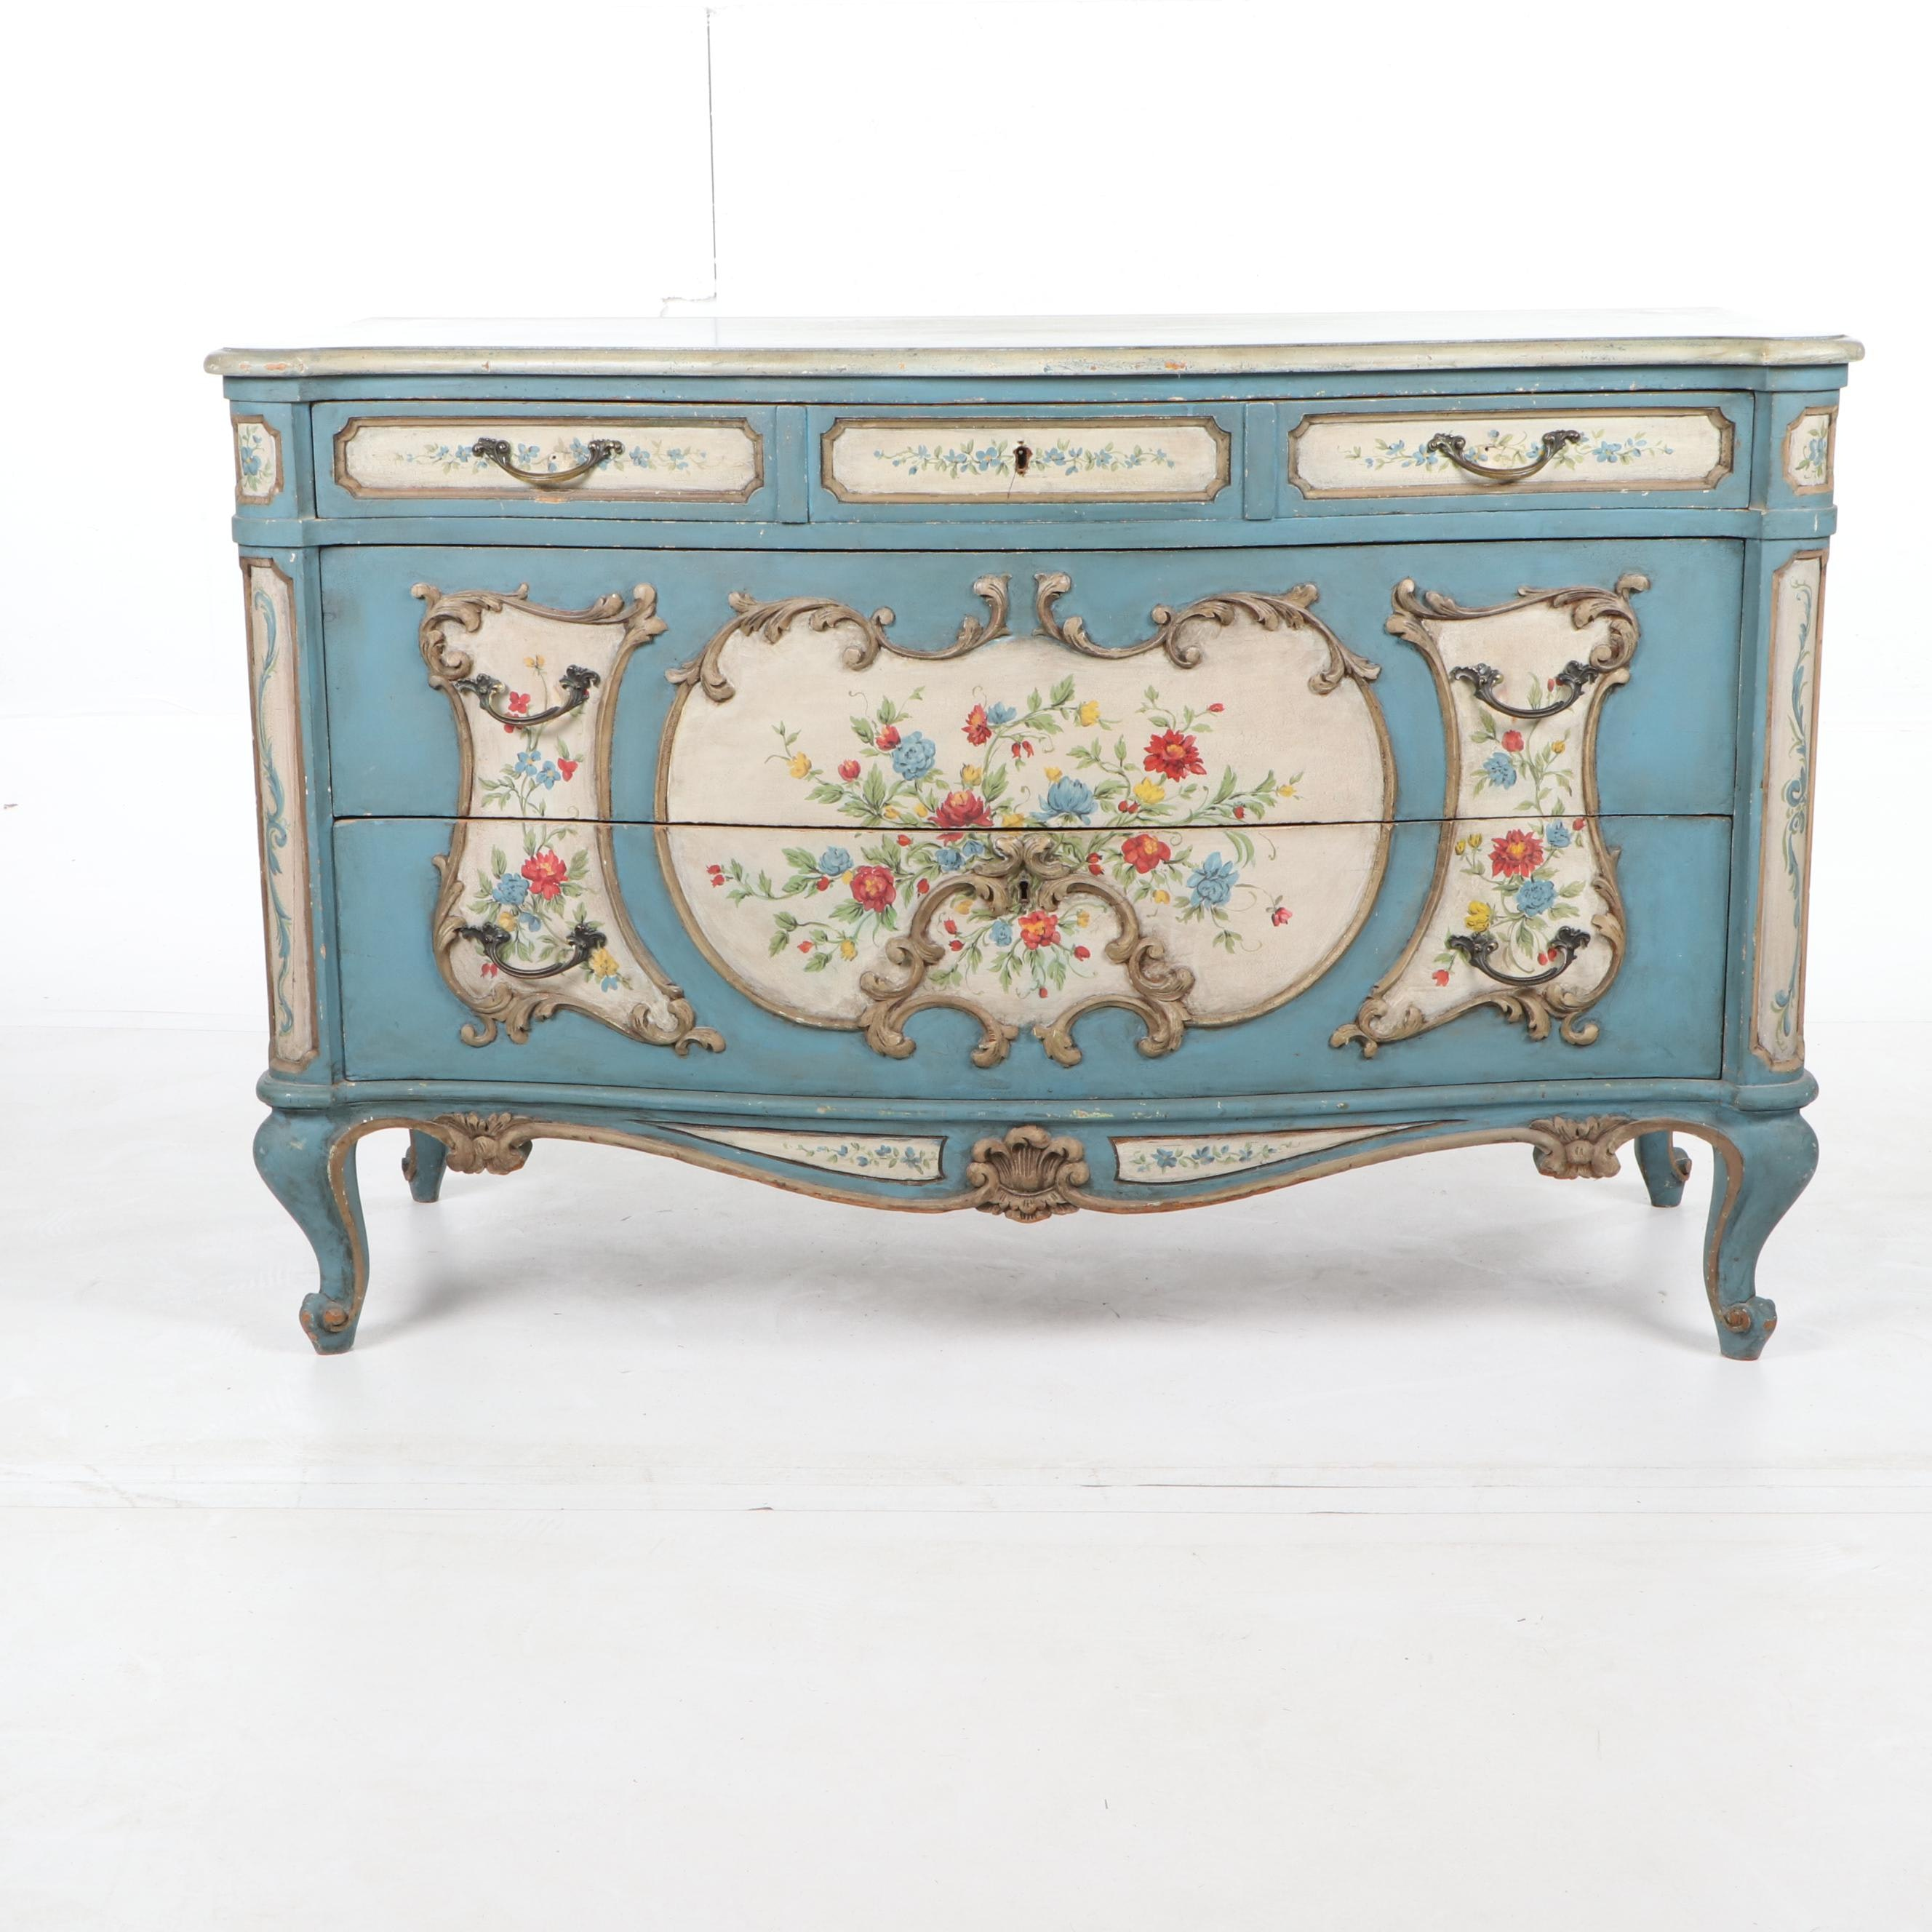 French Provincial Style Painted Wood Three-Drawer Chest, Early 20th Century